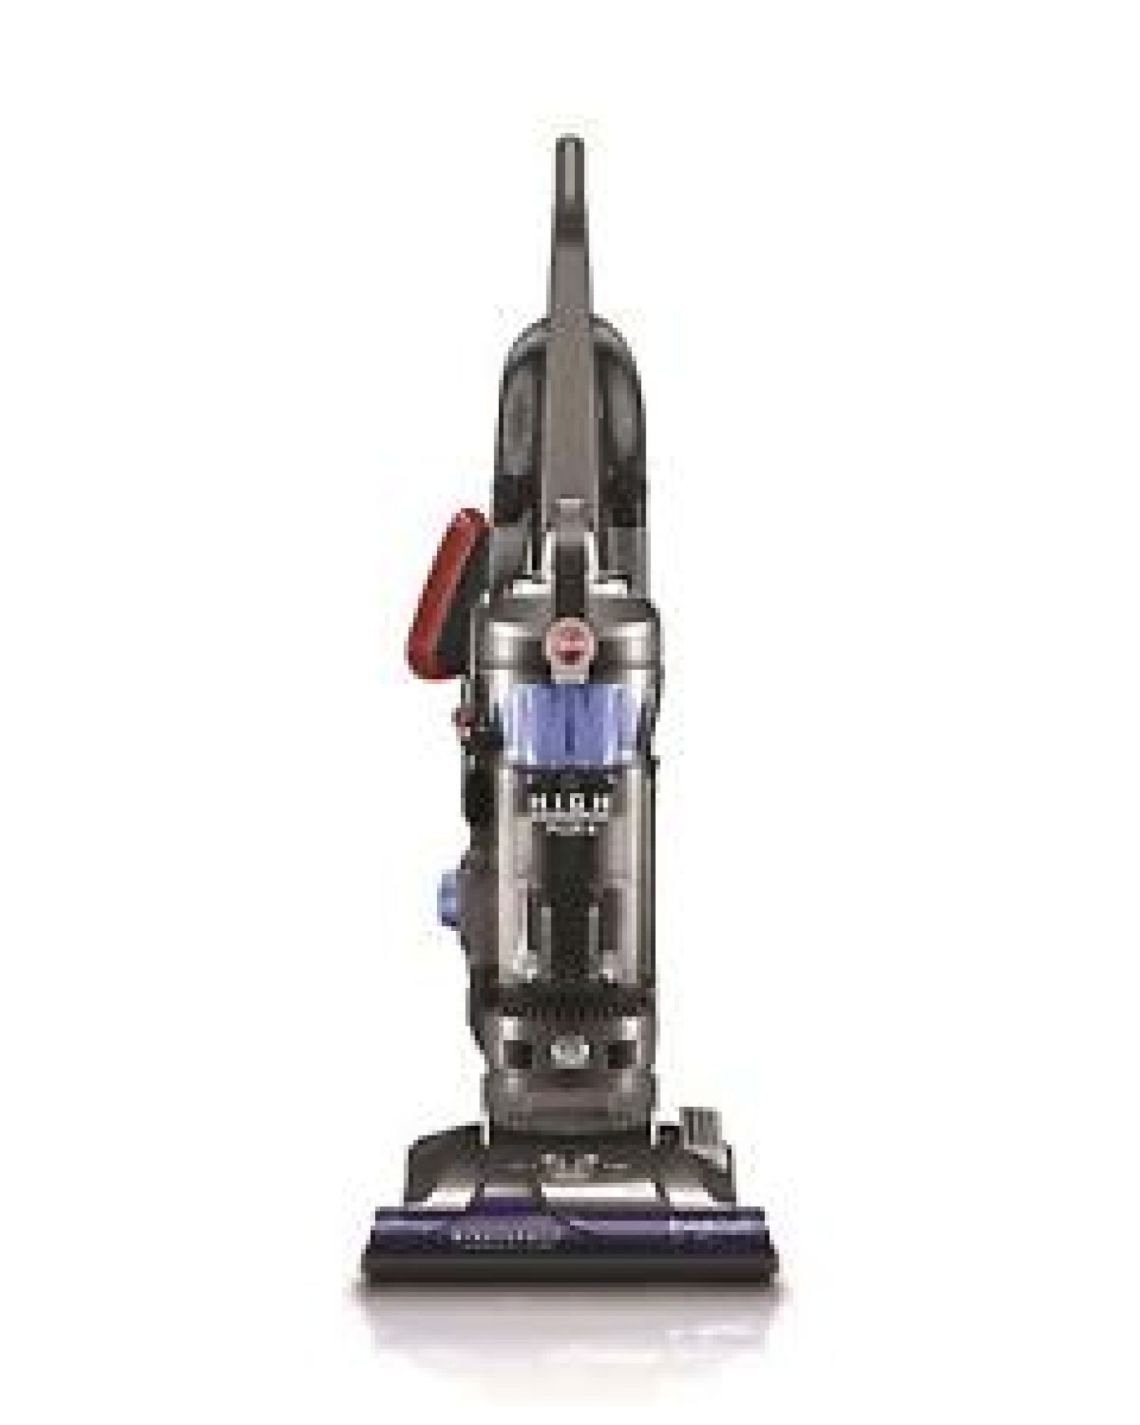 Hoover WindTunnel 3 High Performance Plus Upright Vacuum Cleaner UH72615 73502043363 | eBay